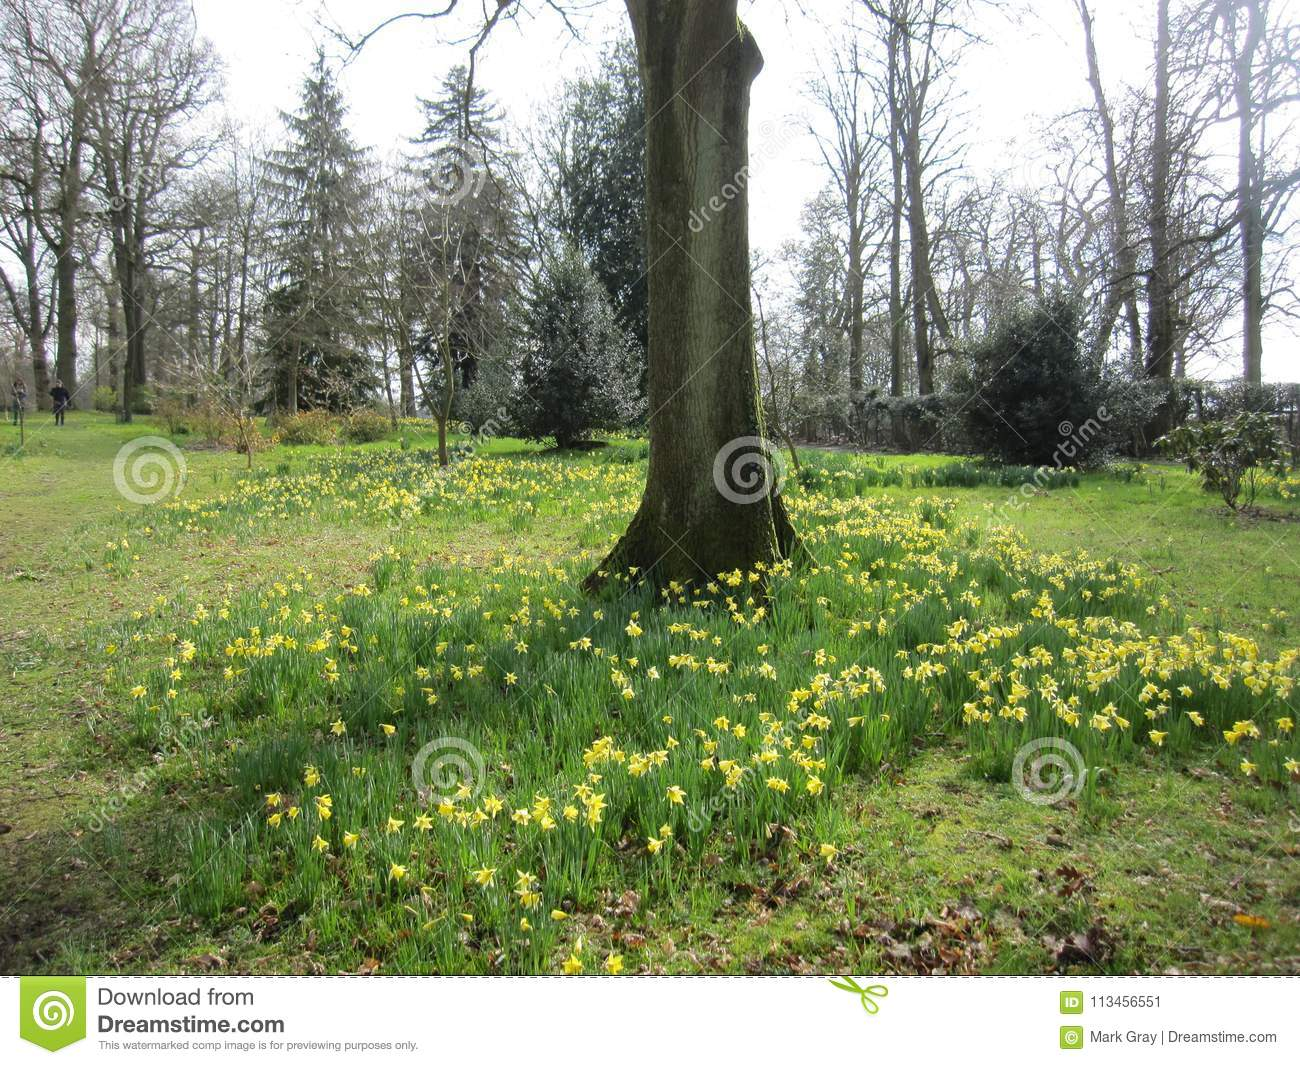 Springtime in england stock image image of tree flowers 113456551 download springtime in england stock image image of tree flowers 113456551 mightylinksfo